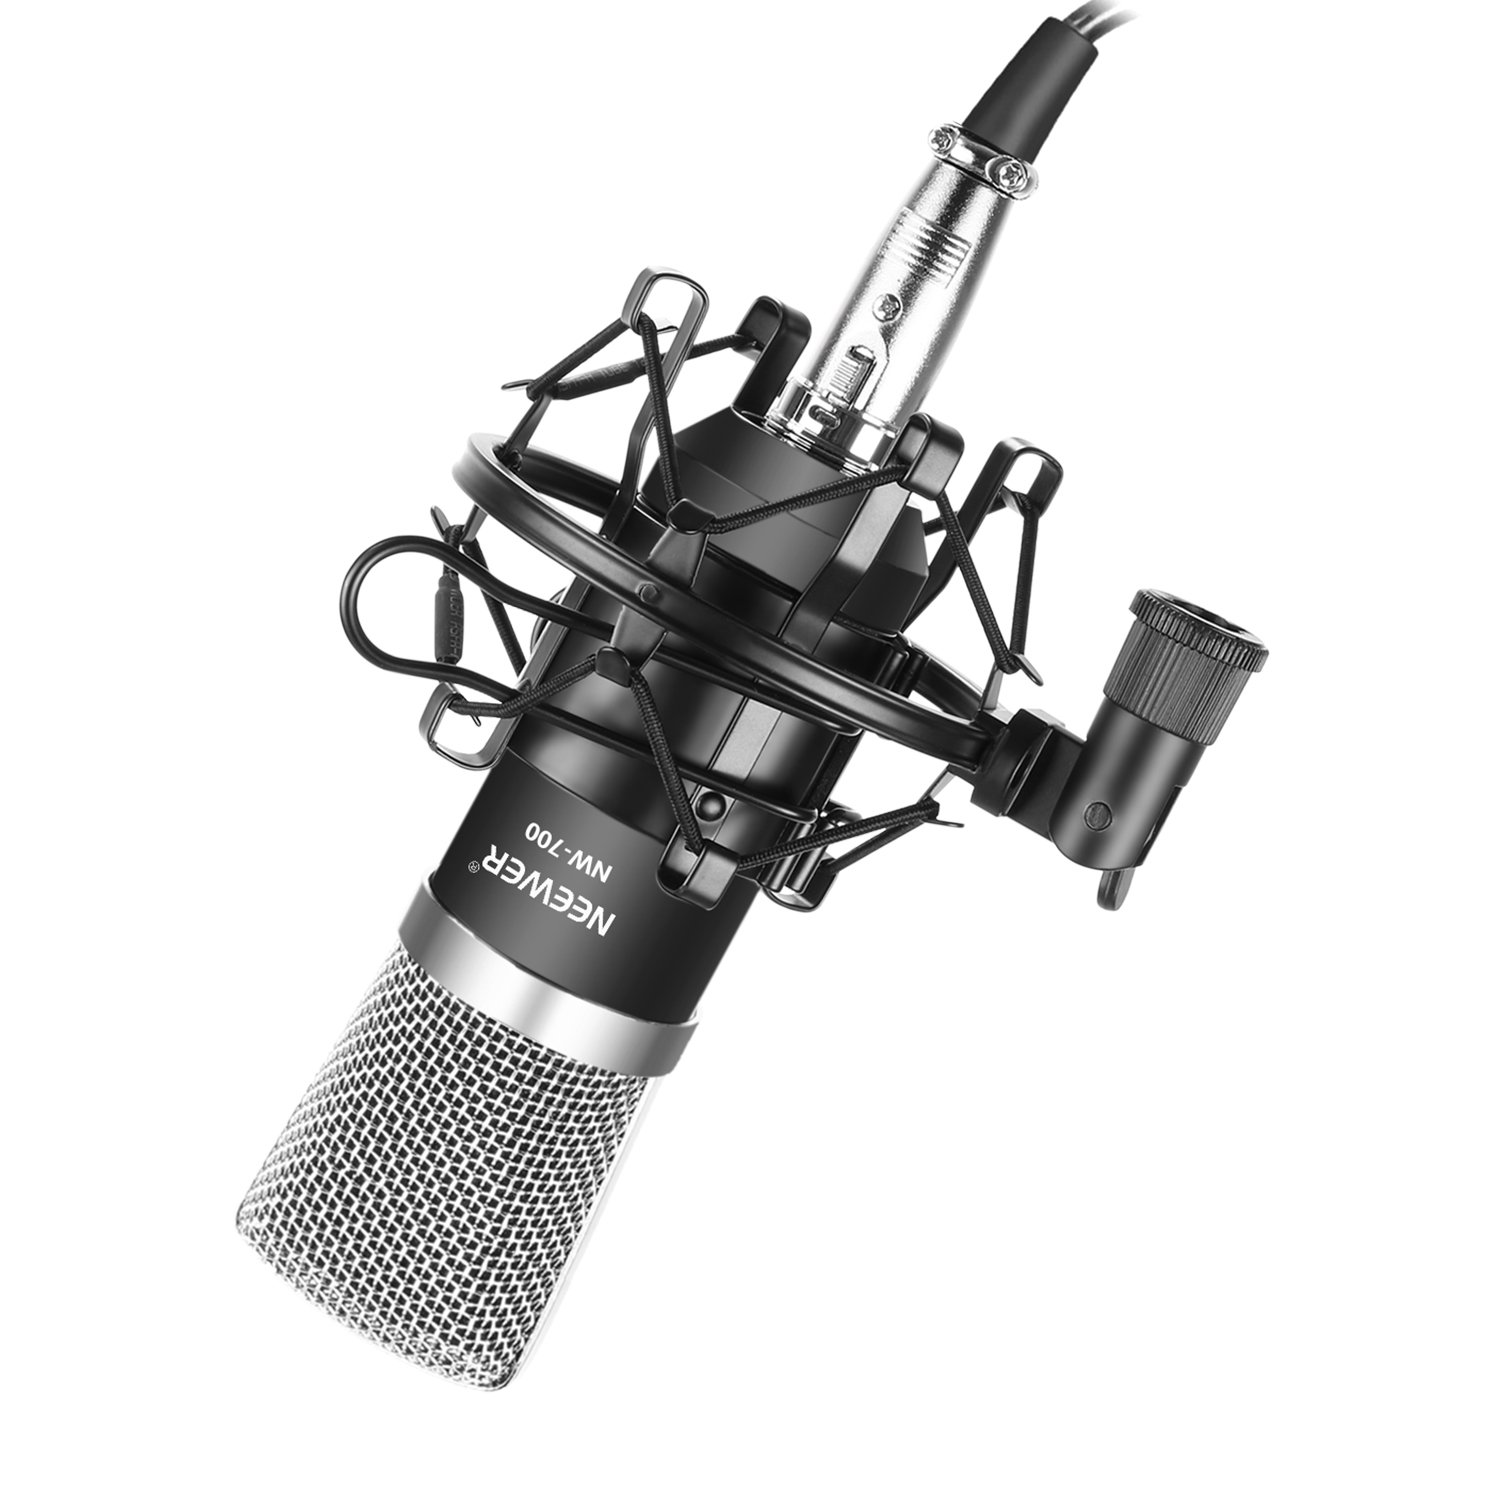 Neewer FO1000689R NW-700 Professional Studio Broadcasting & Recording Condenser Microphone Set Including: (1)NW-700 Condenser Microphone + (1)Metal Microphone Shock Mount + (1)Ball-type Anti-wind Foam Cap + (1)Microphone Audio Cable (Black) by Neewer